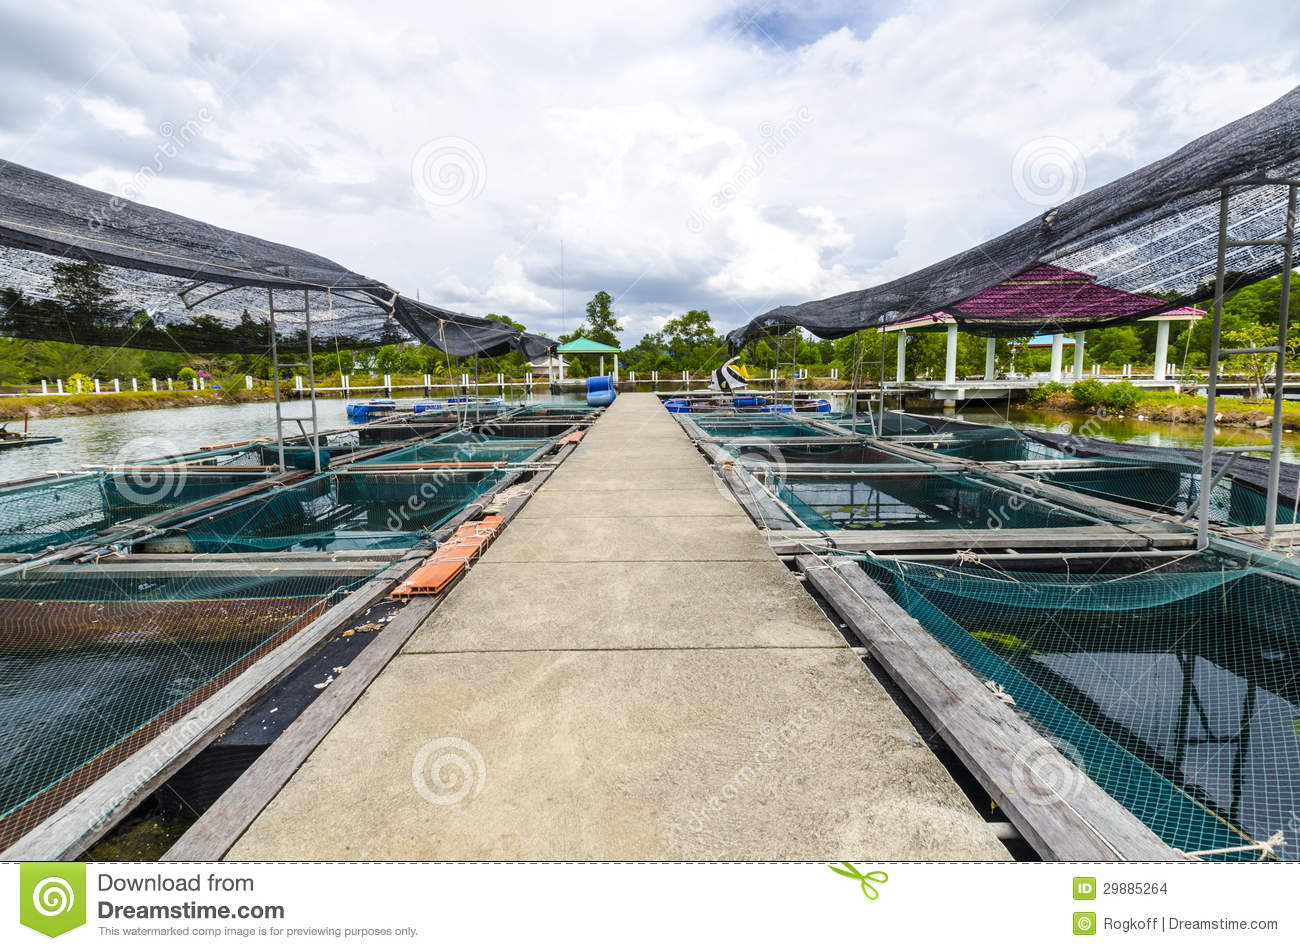 Fish farm in the pond. Krabi South Thailand.